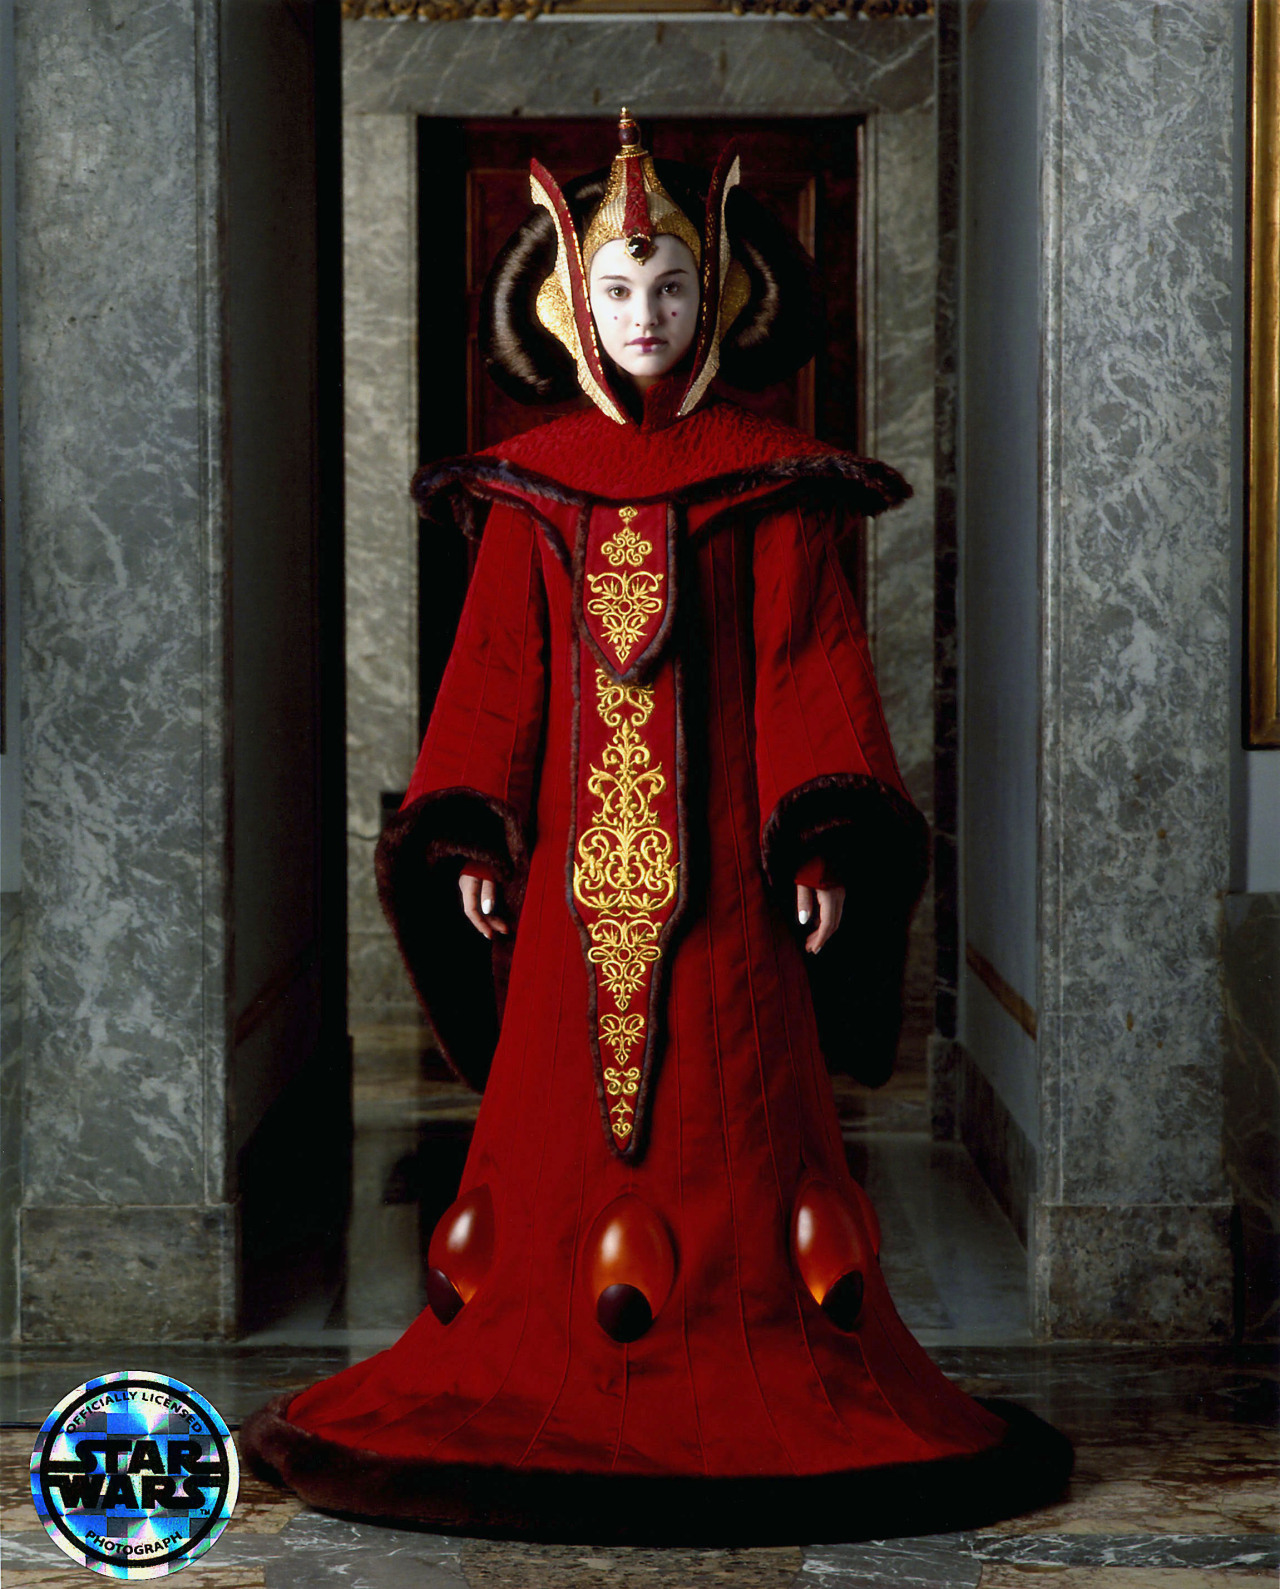 Star Wars Fit for a Queen Queen Amidalas Throne Room